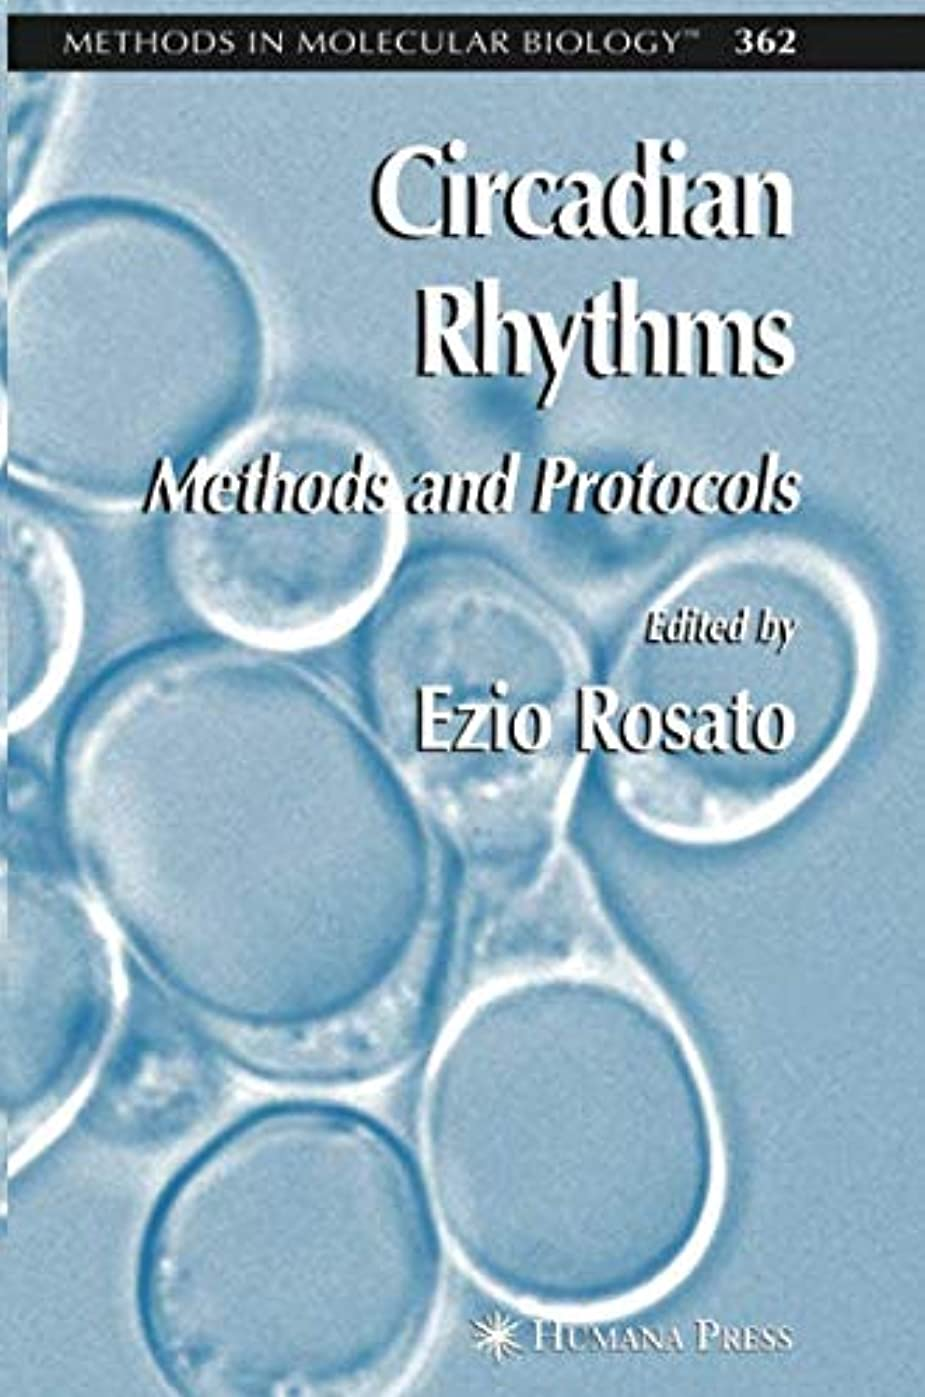 鼻電子レンジ引き金Circadian Rhythms: Methods and Protocols (Methods in Molecular Biology)